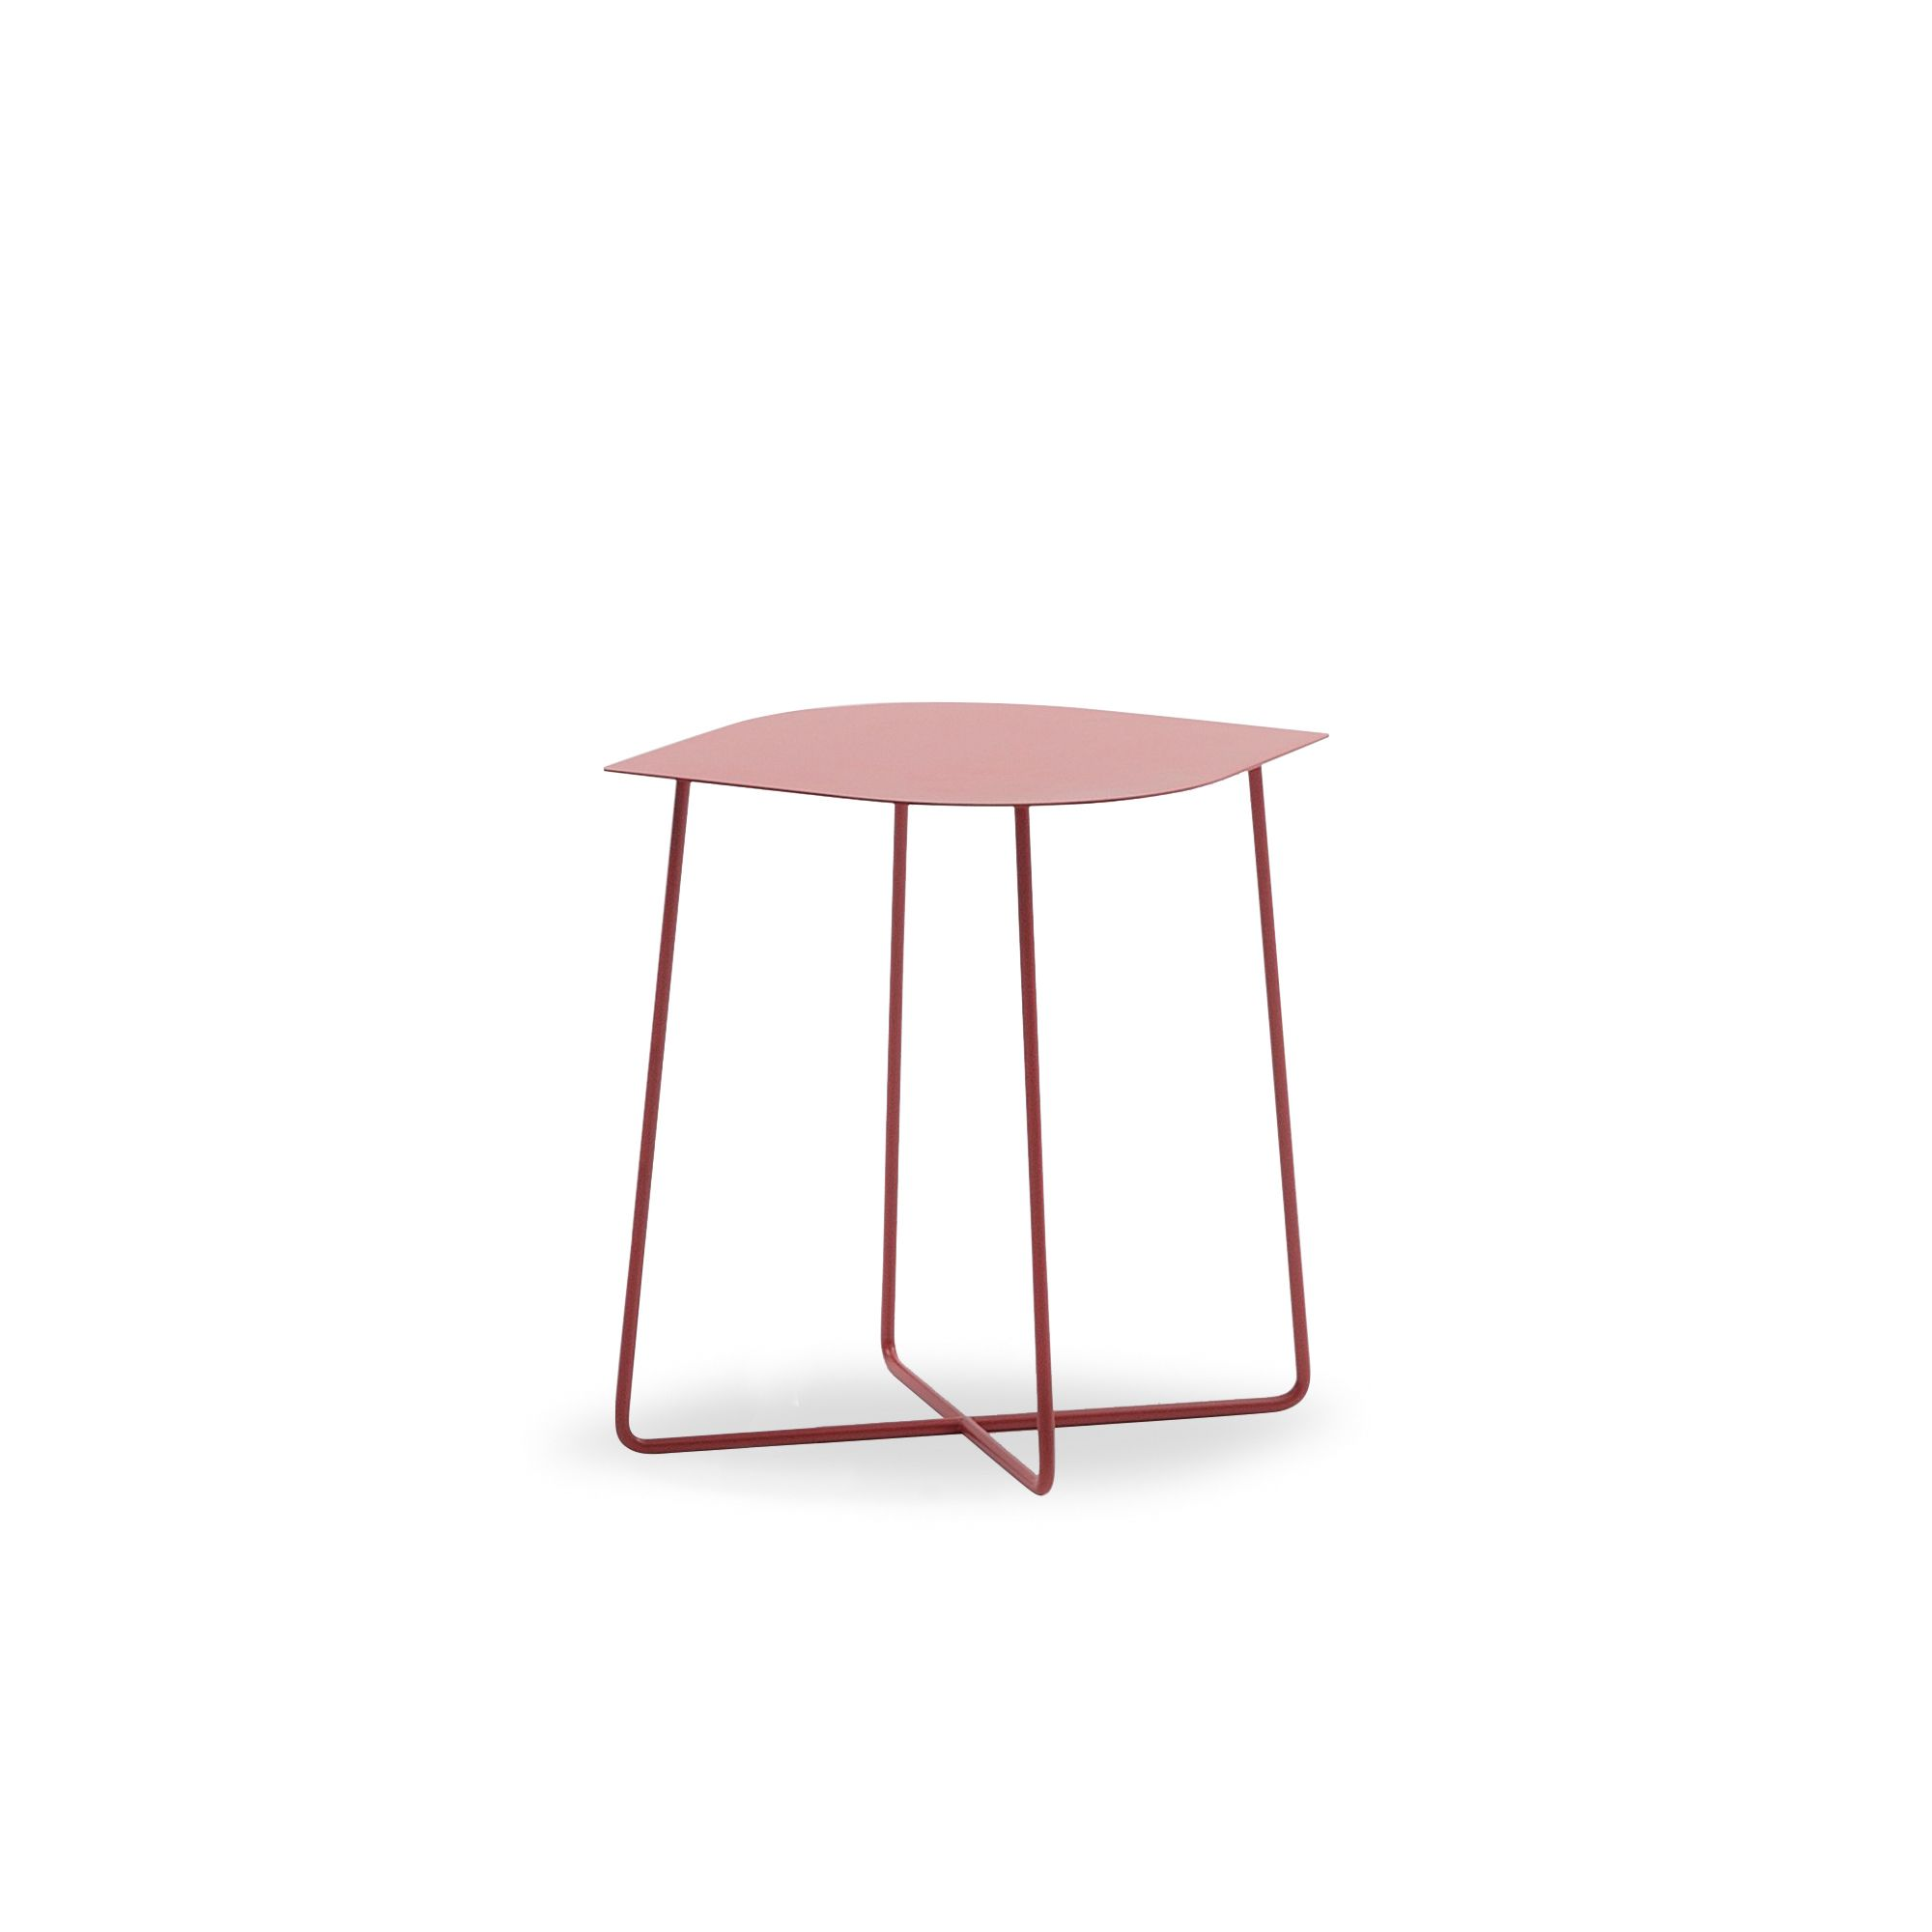 Bonaldo metal coffee table, Leaf high model, with late metal top, available in multiple colours